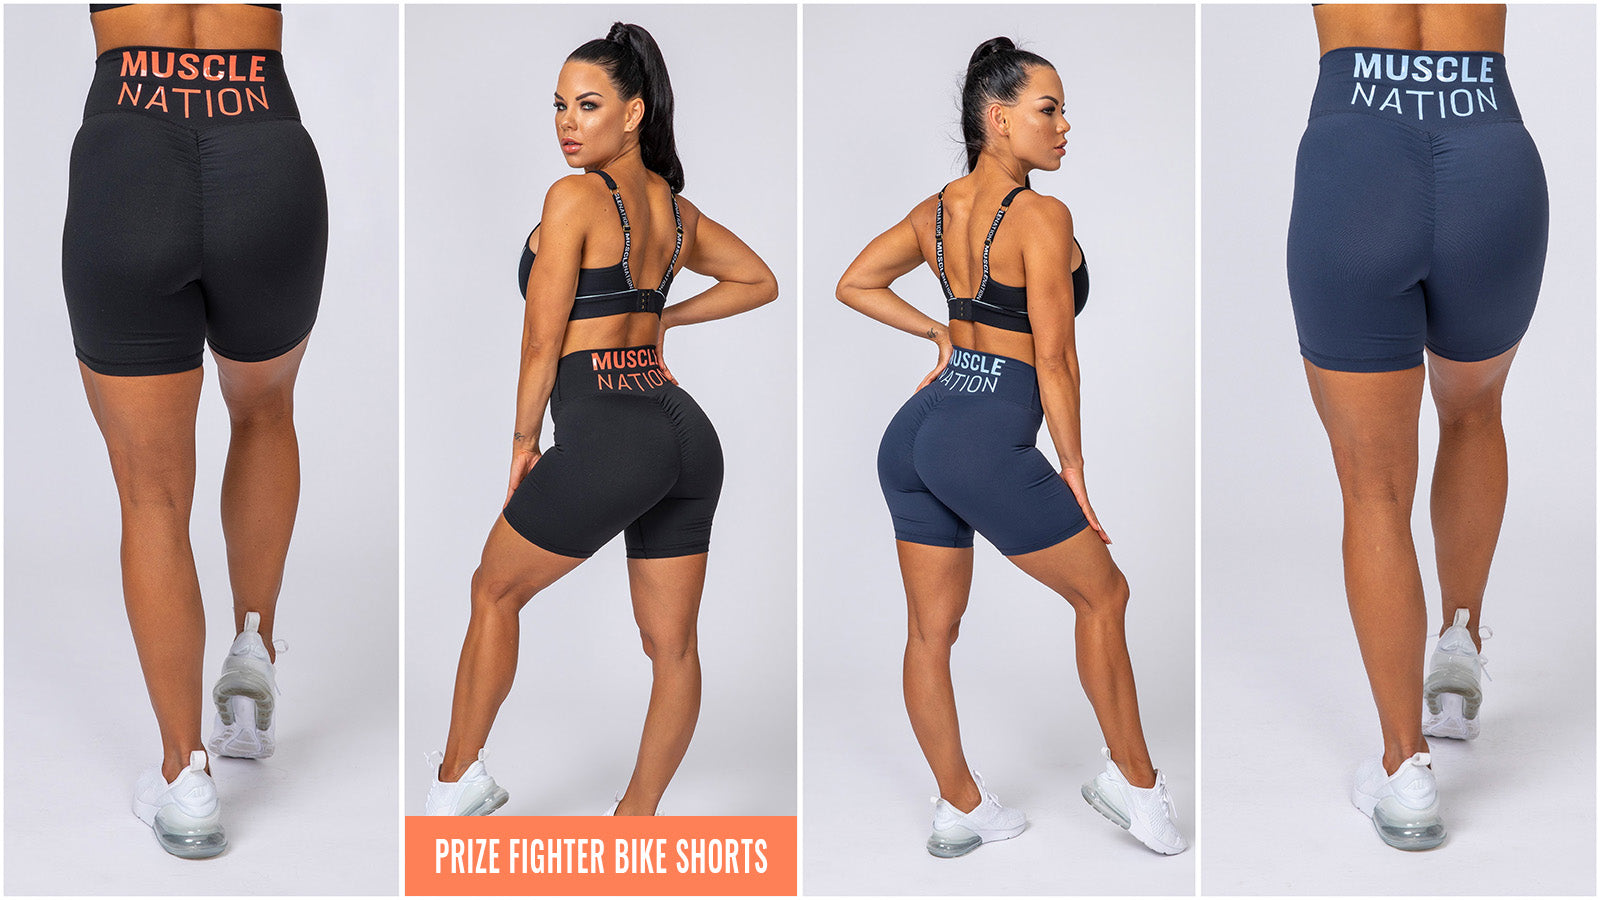 Muscle Nation Prize Fighter Bike Shorts